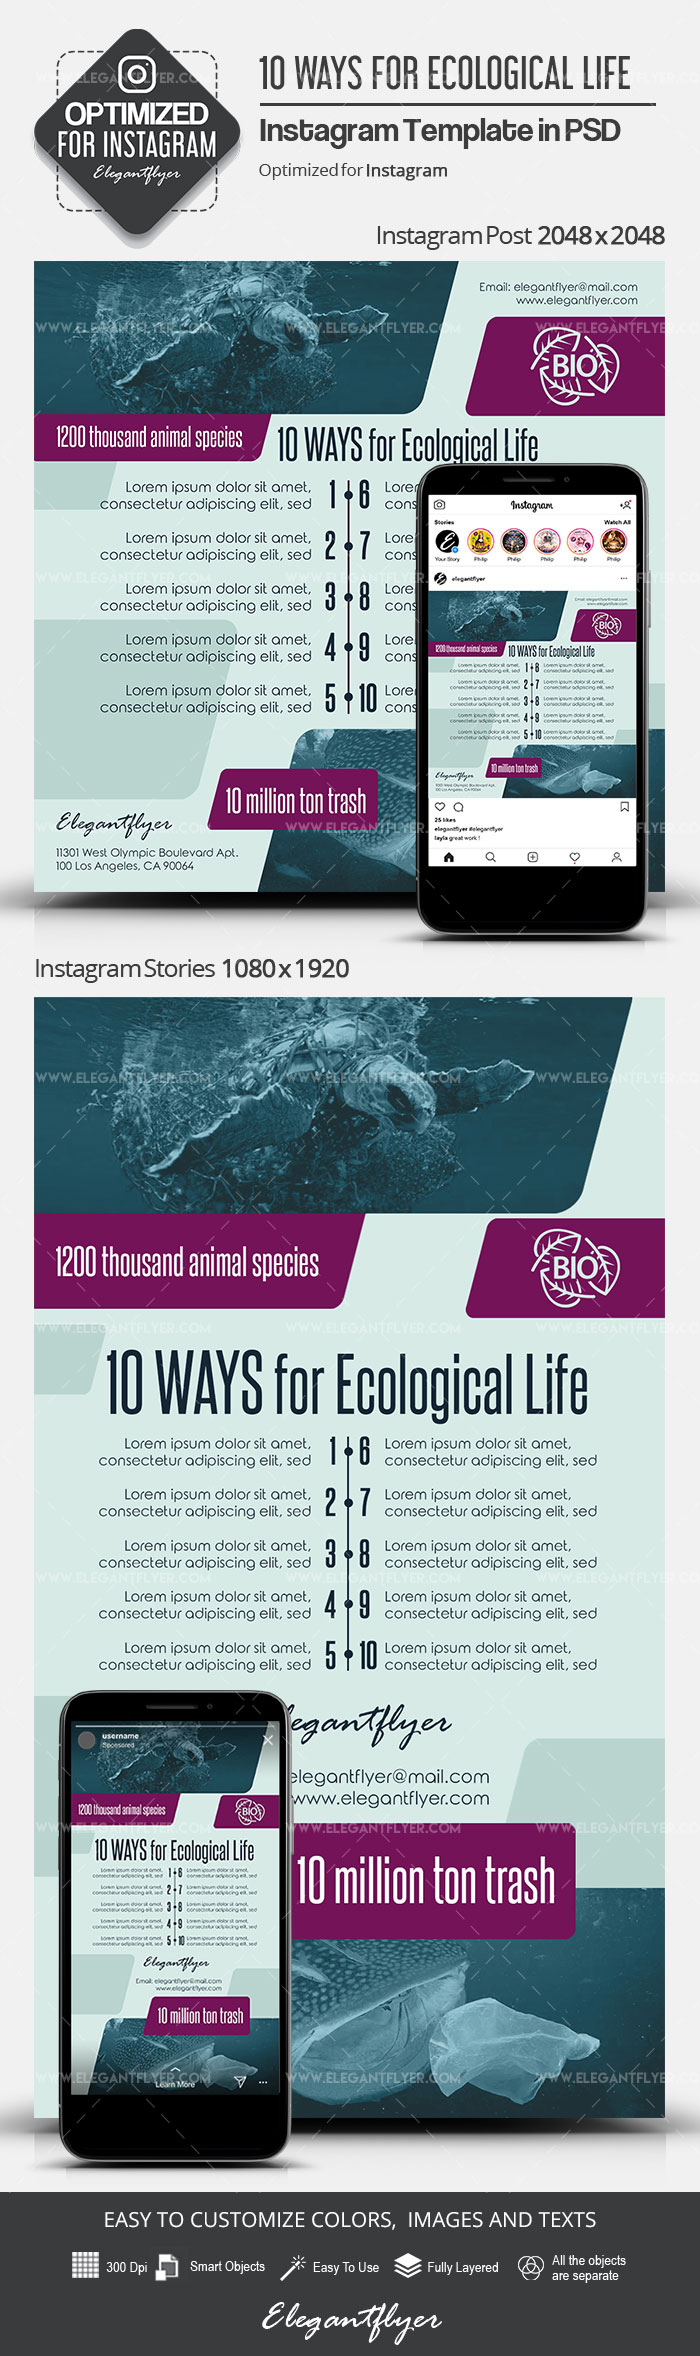 10 Ways for Ecological Life – Instagram Stories Template in PSD + Post Templates